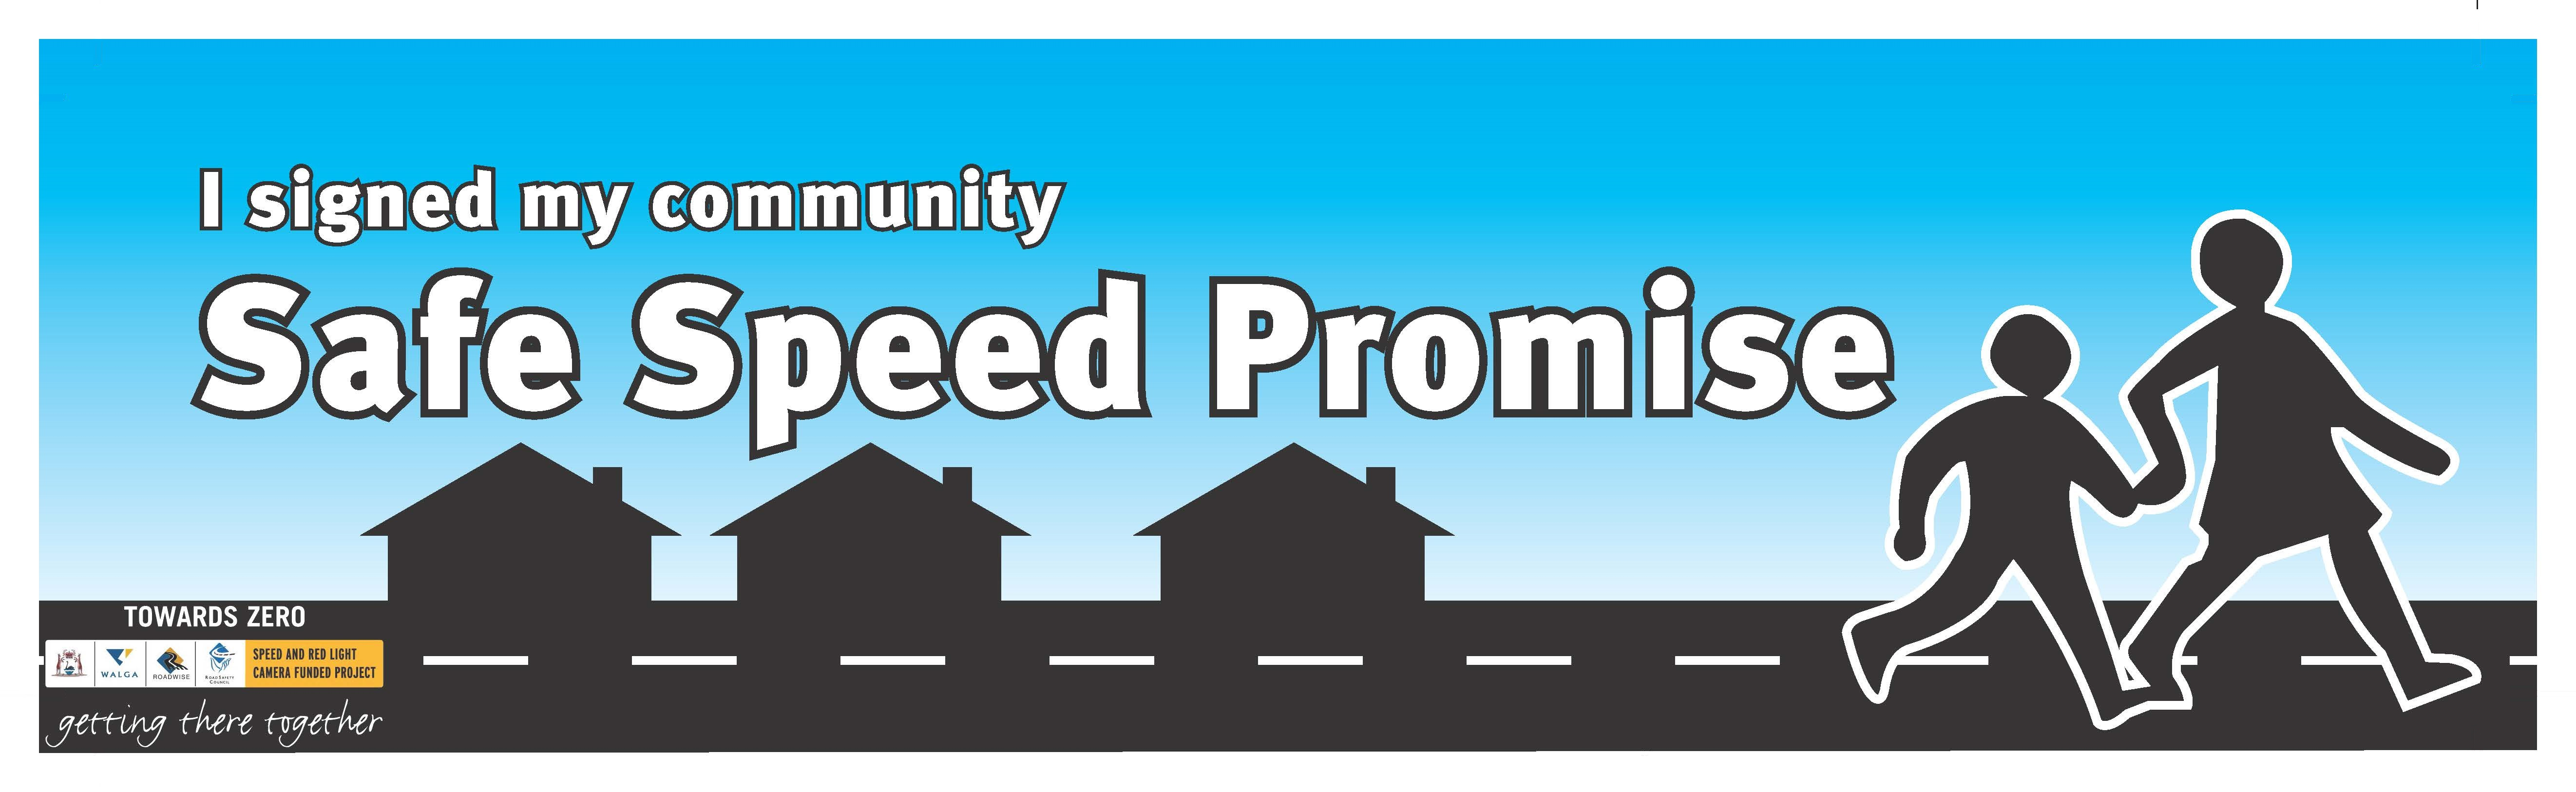 Safe Speed Promise